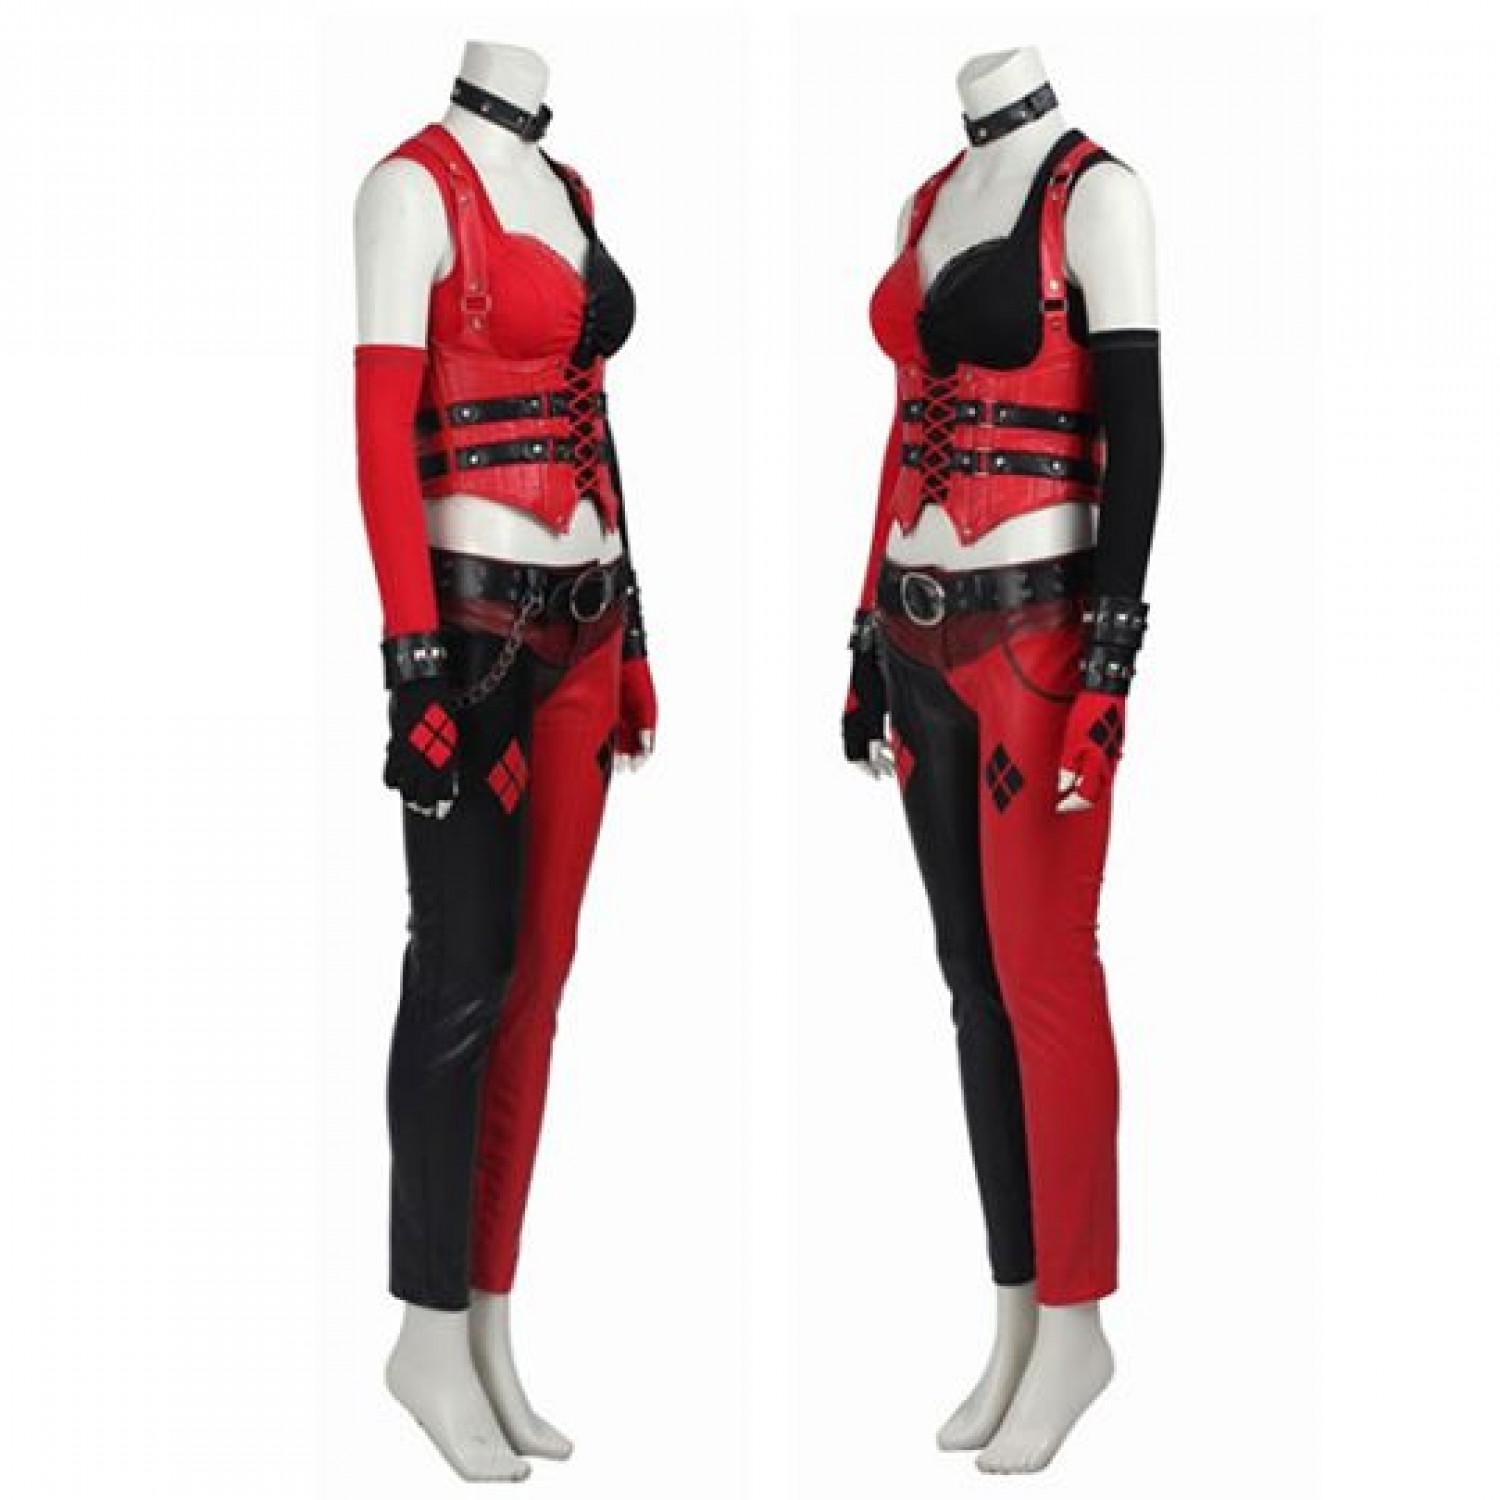 The Batman Adventures Harley Quinn Cosplay Costume